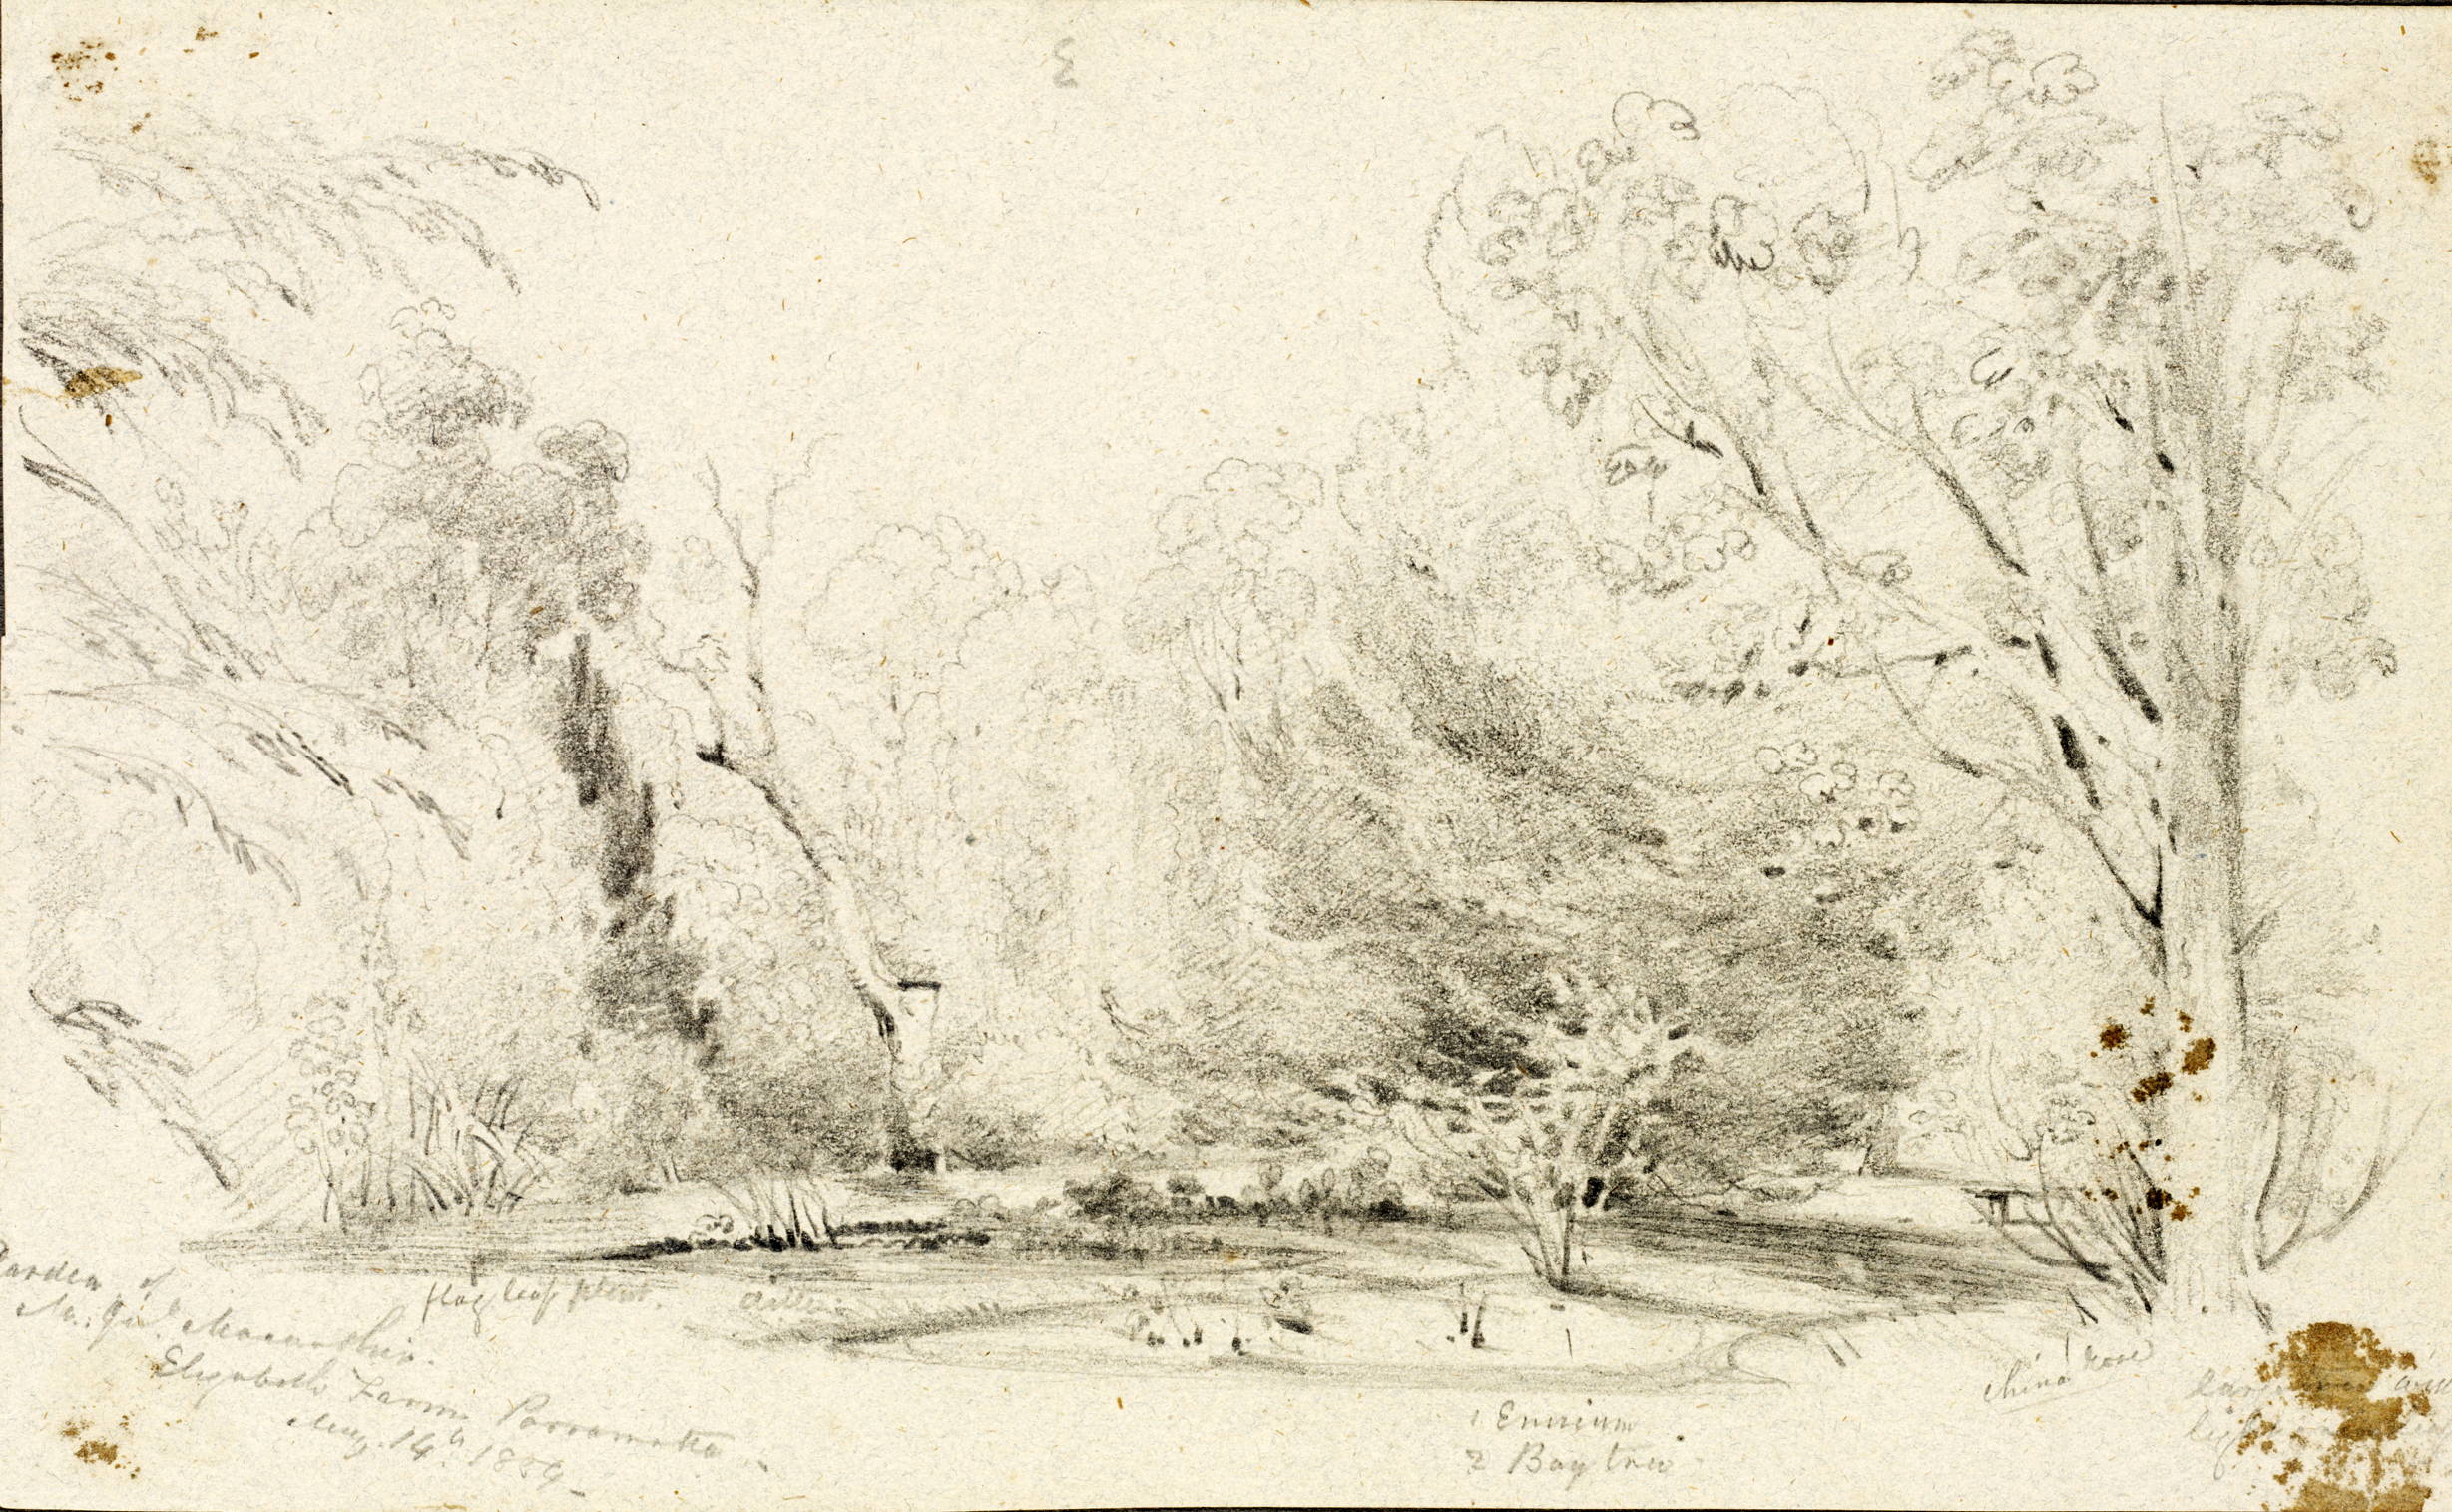 Faint pencil drawing of trees on discoloured paper with spidery handwriitten annotations.